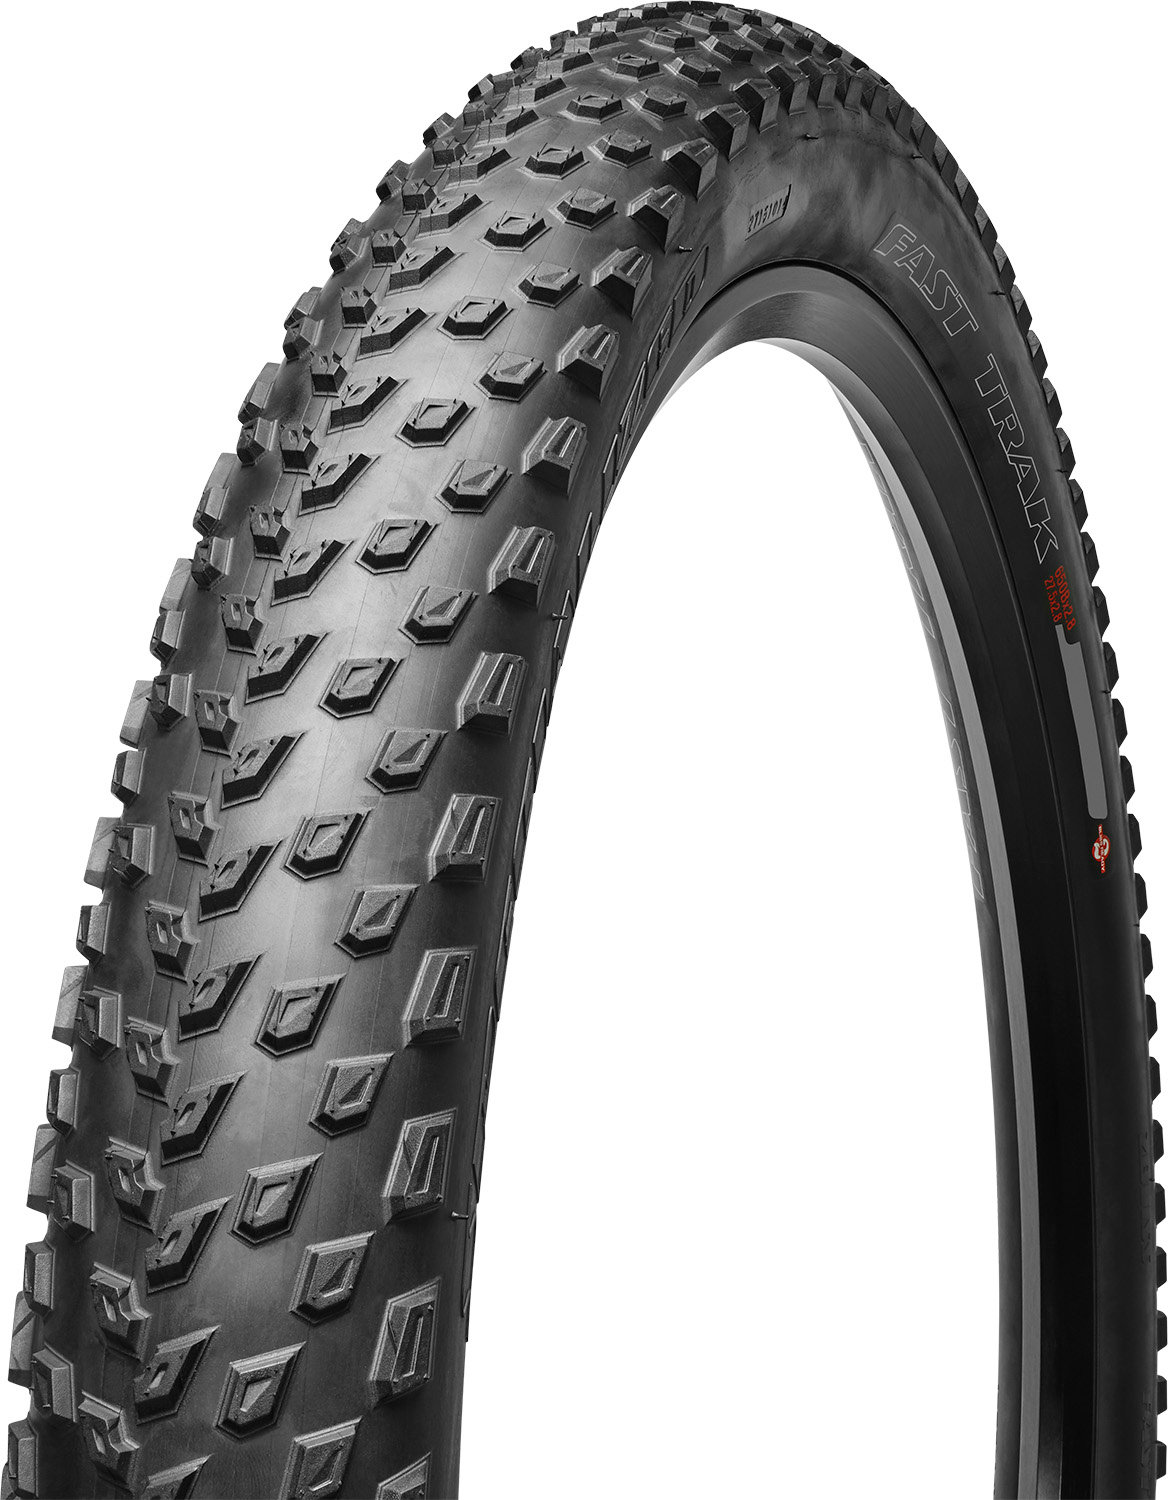 SPECIALIZED FAST TRAK SPORT TIRE 26X2.2 - SPECIALIZED FAST TRAK SPORT TIRE 26X2.2